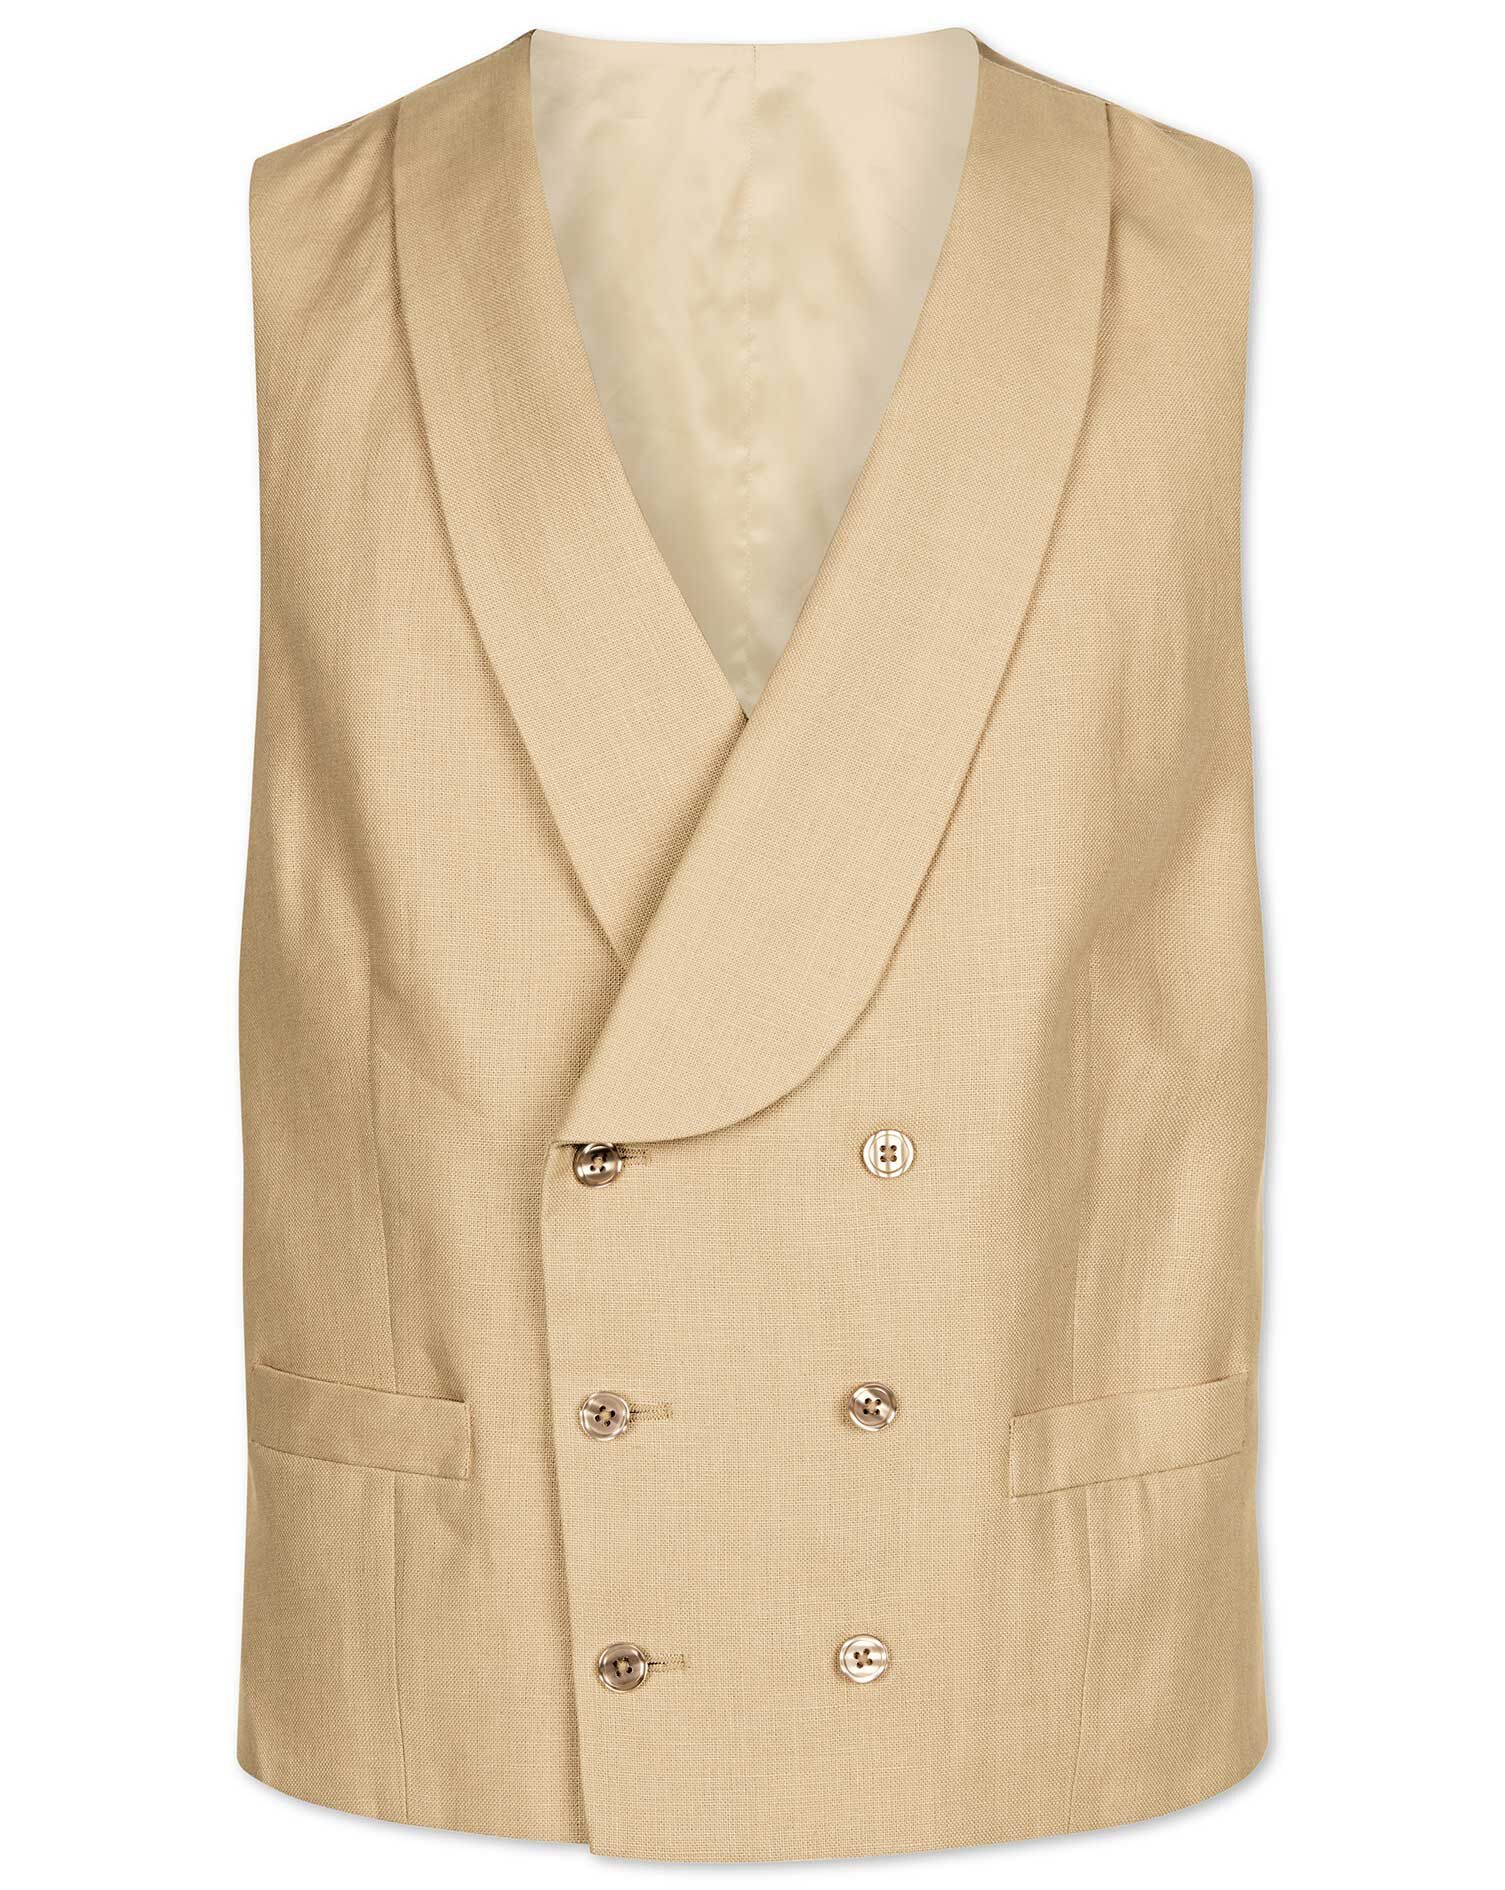 Men's Vintage Vests, Sweater Vests Buff Linen Morning Suit Waistcoat Size w48 by Charles Tyrwhitt £199.00 AT vintagedancer.com